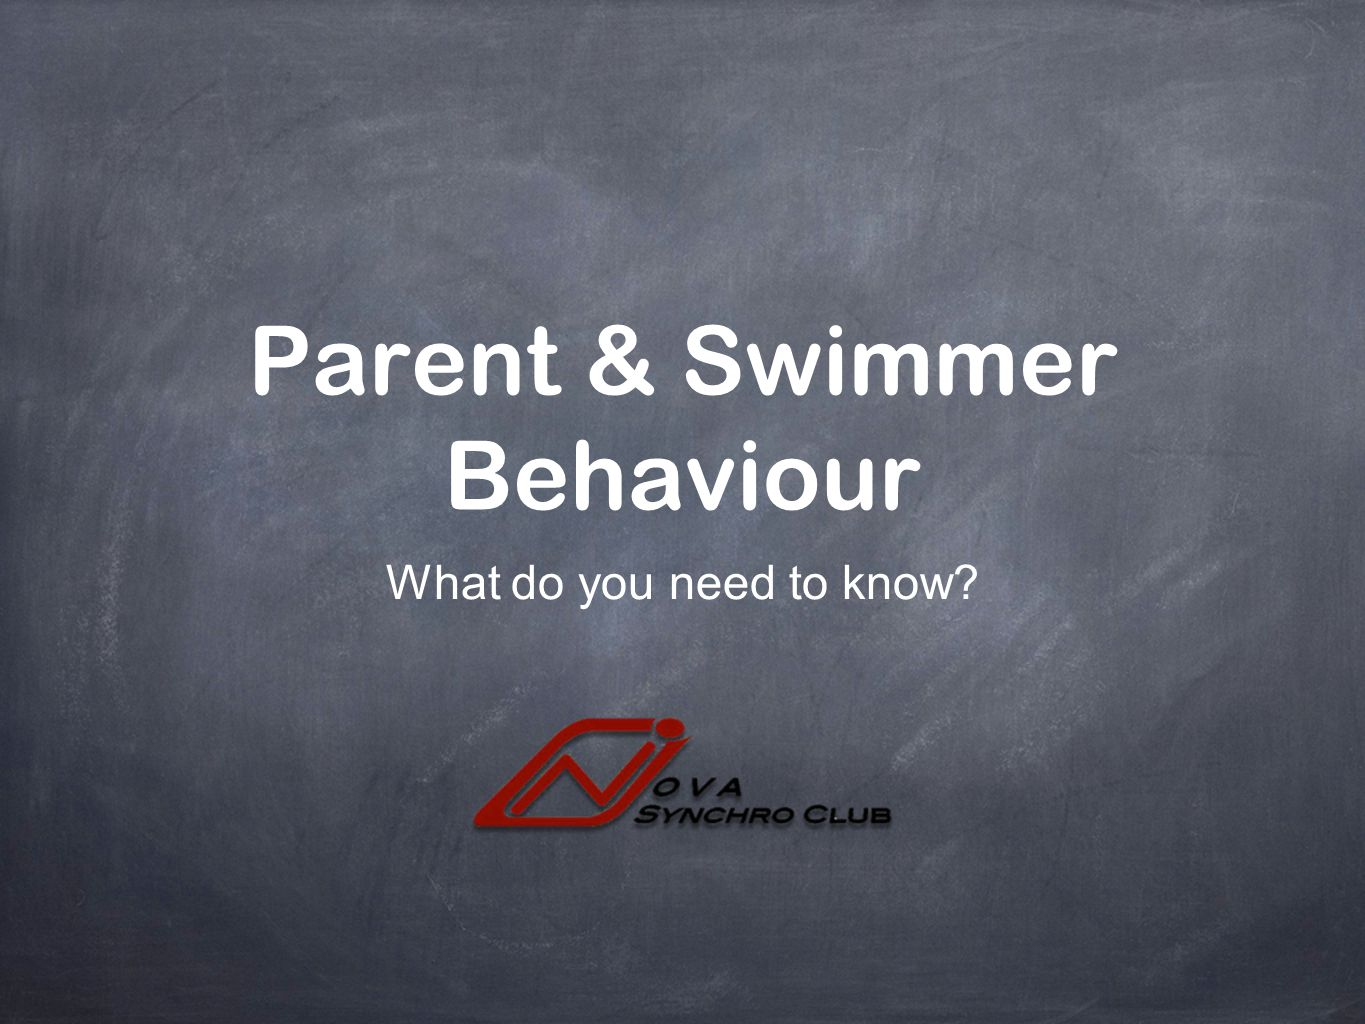 Parent & Swimmer Behaviour